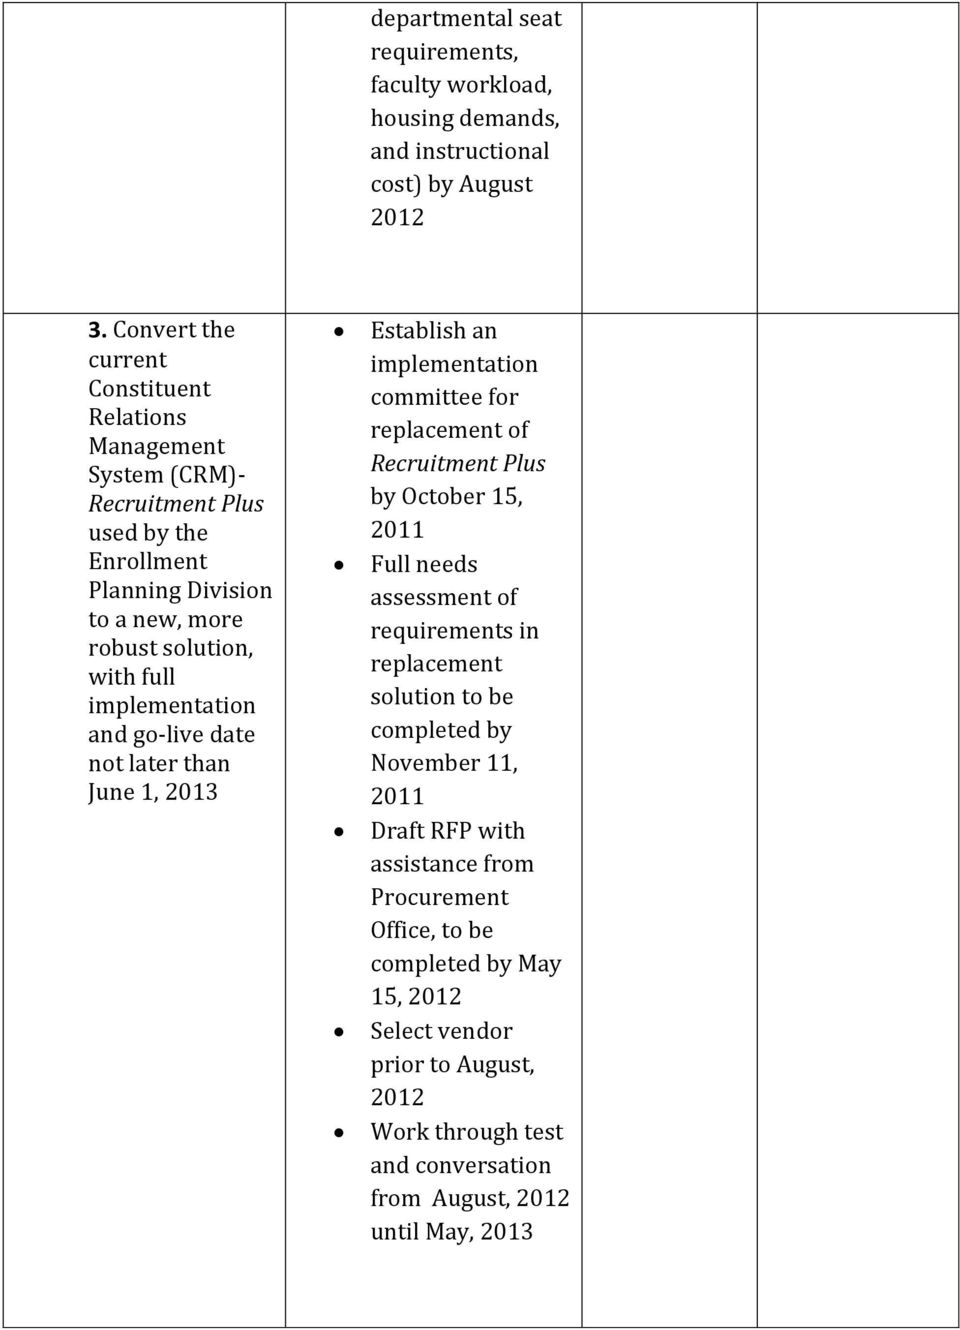 implementation and go-live date not later than June 1, 2013 Establish an implementation committee for replacement of Recruitment Plus by October 15, 2011 Full needs assessment of